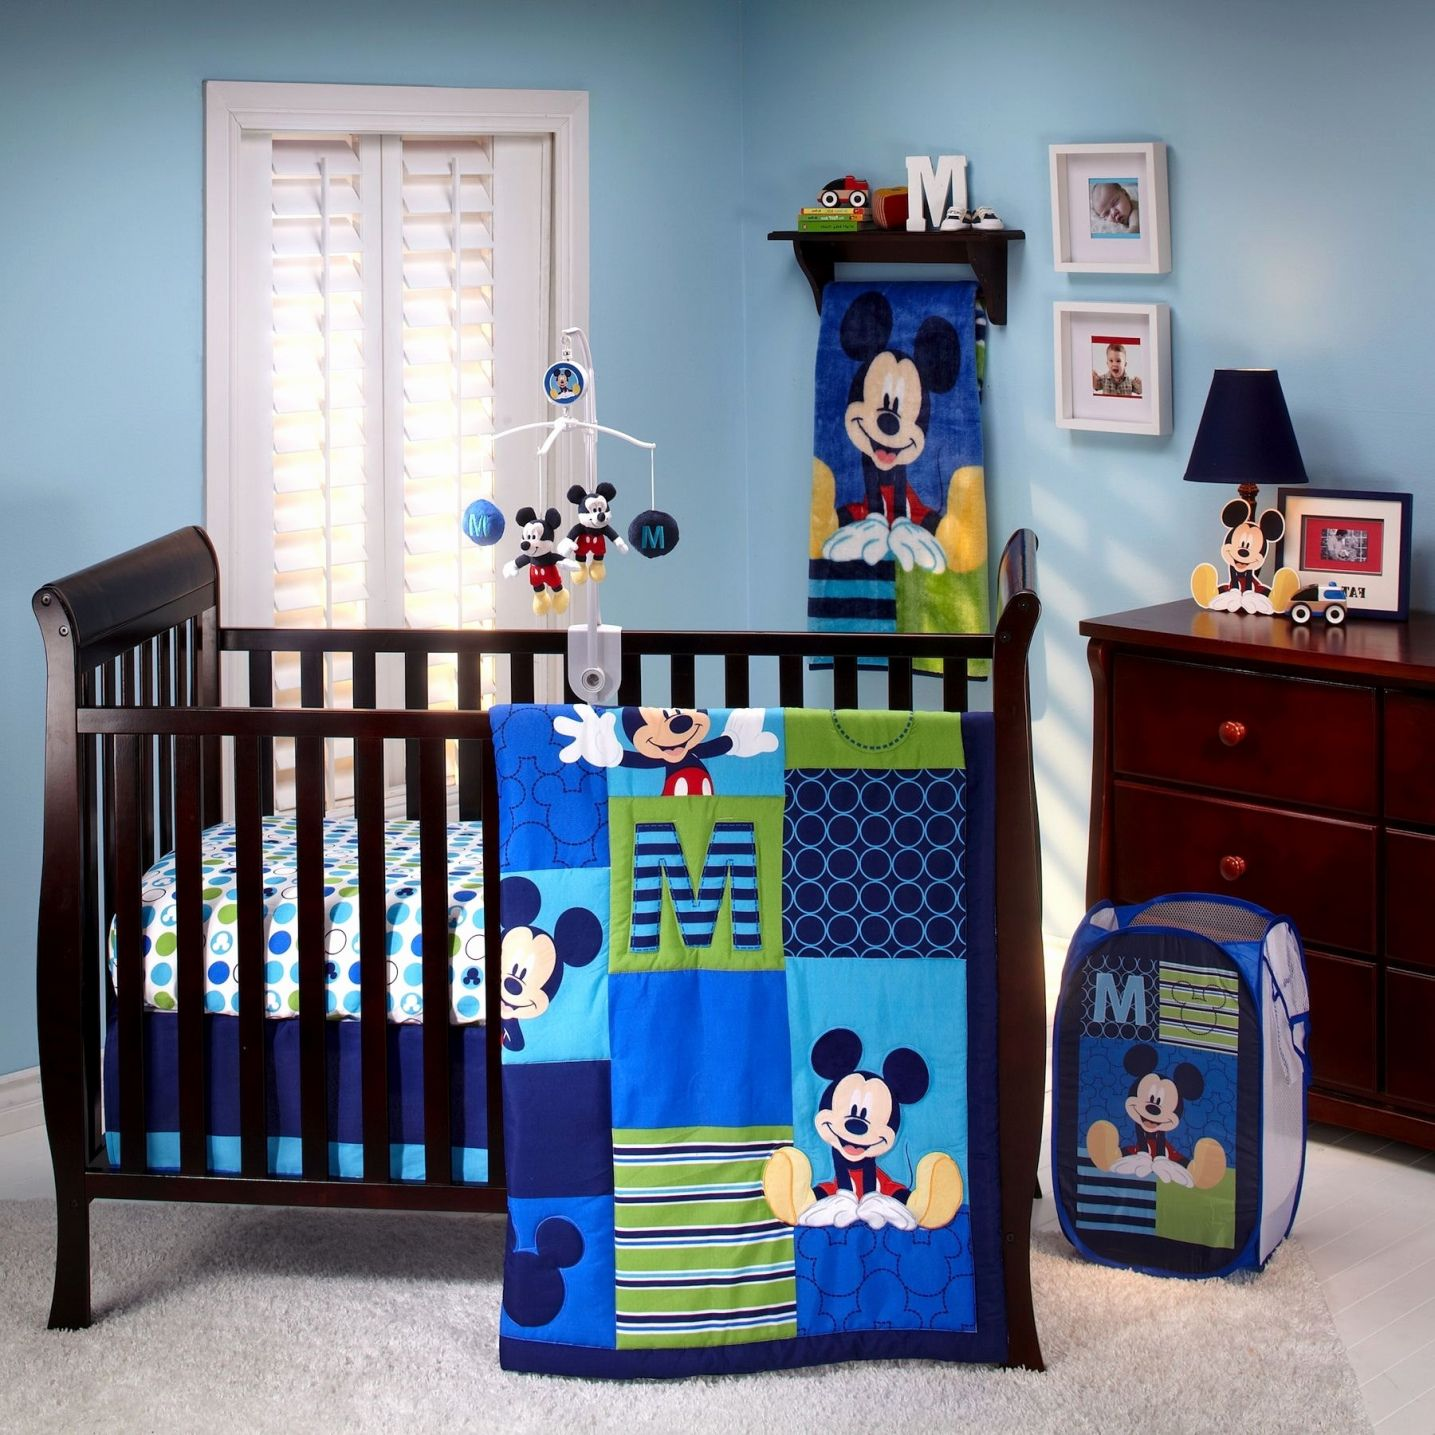 2019 Mickey Mouse Baby Room Decor